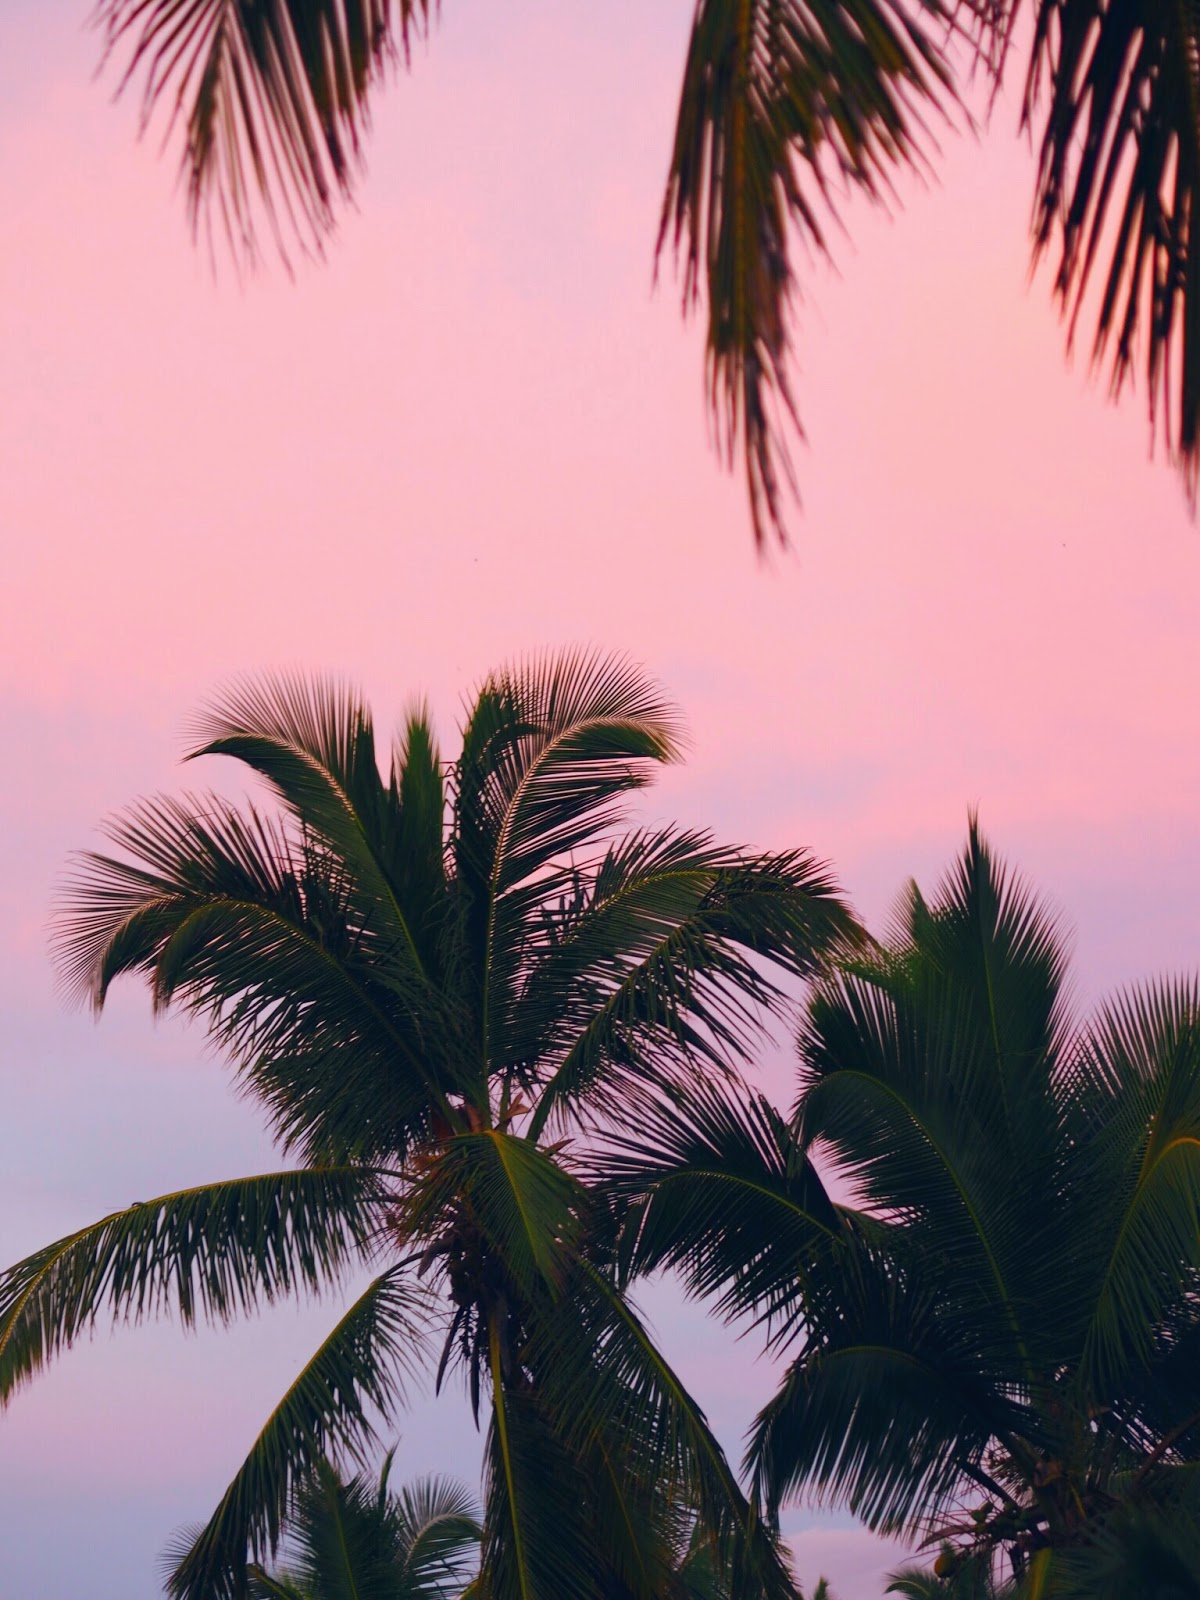 Sunset in Punta Cana Pink and Purple with Palm trees